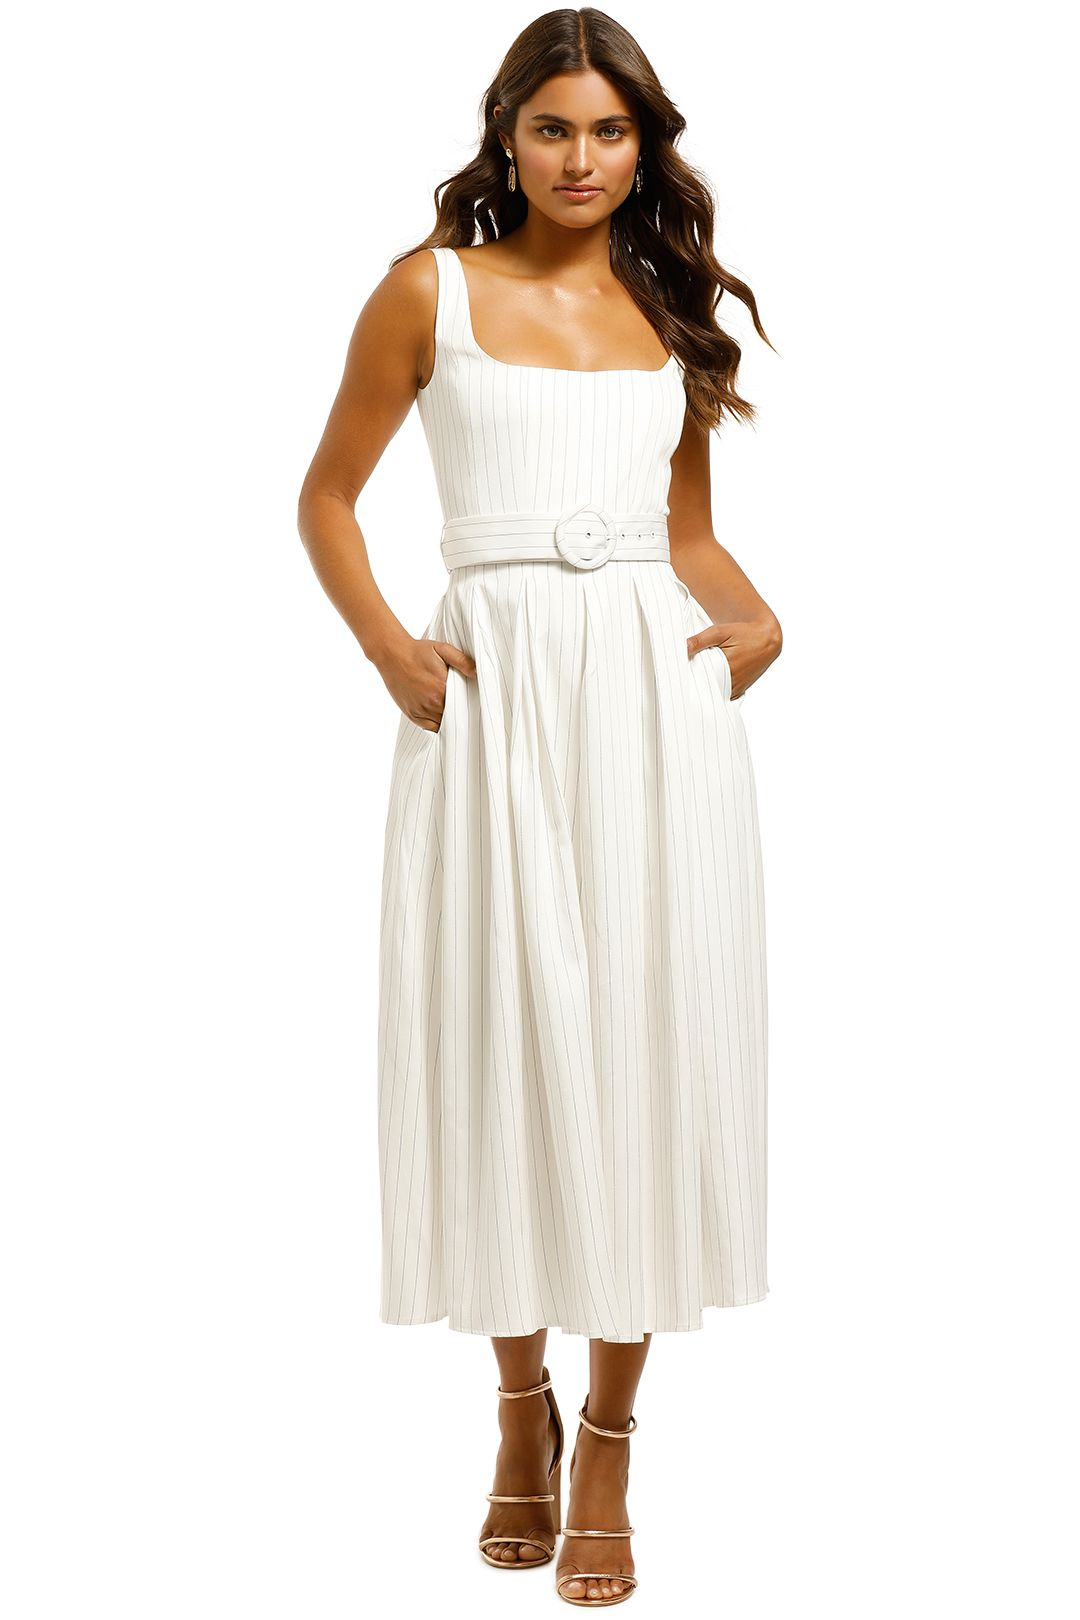 Misha-Karmella-Dress-Ivory-Front